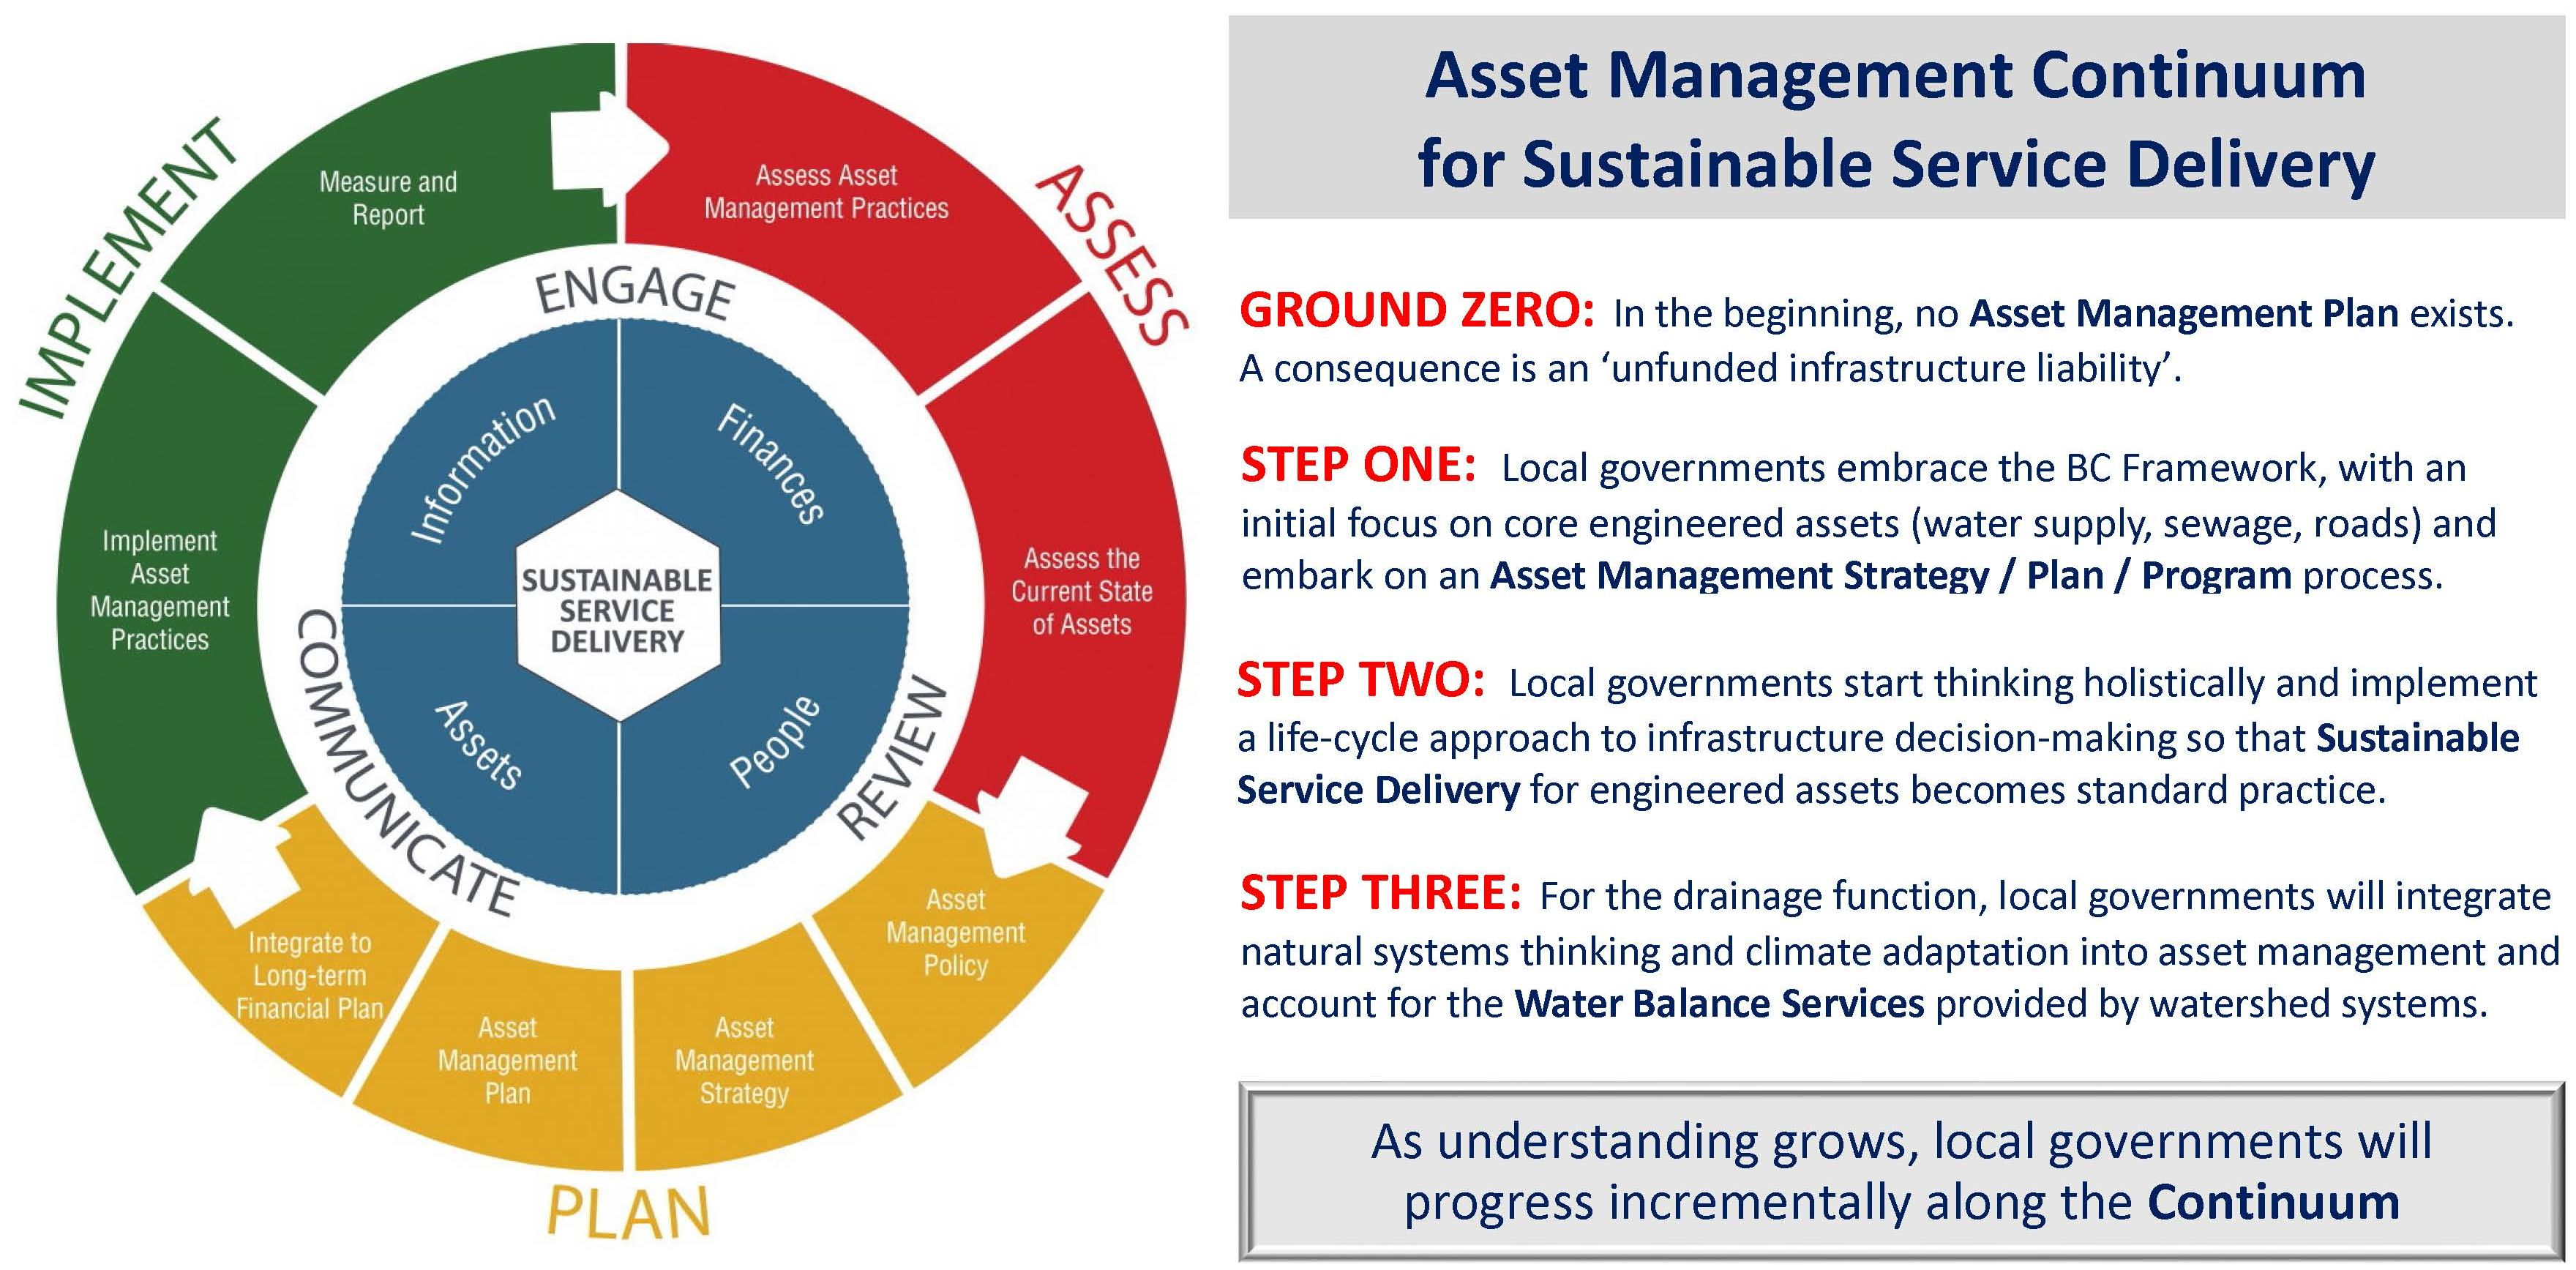 Branding graphic for Sustainable Watershed Systems, through Asset Management